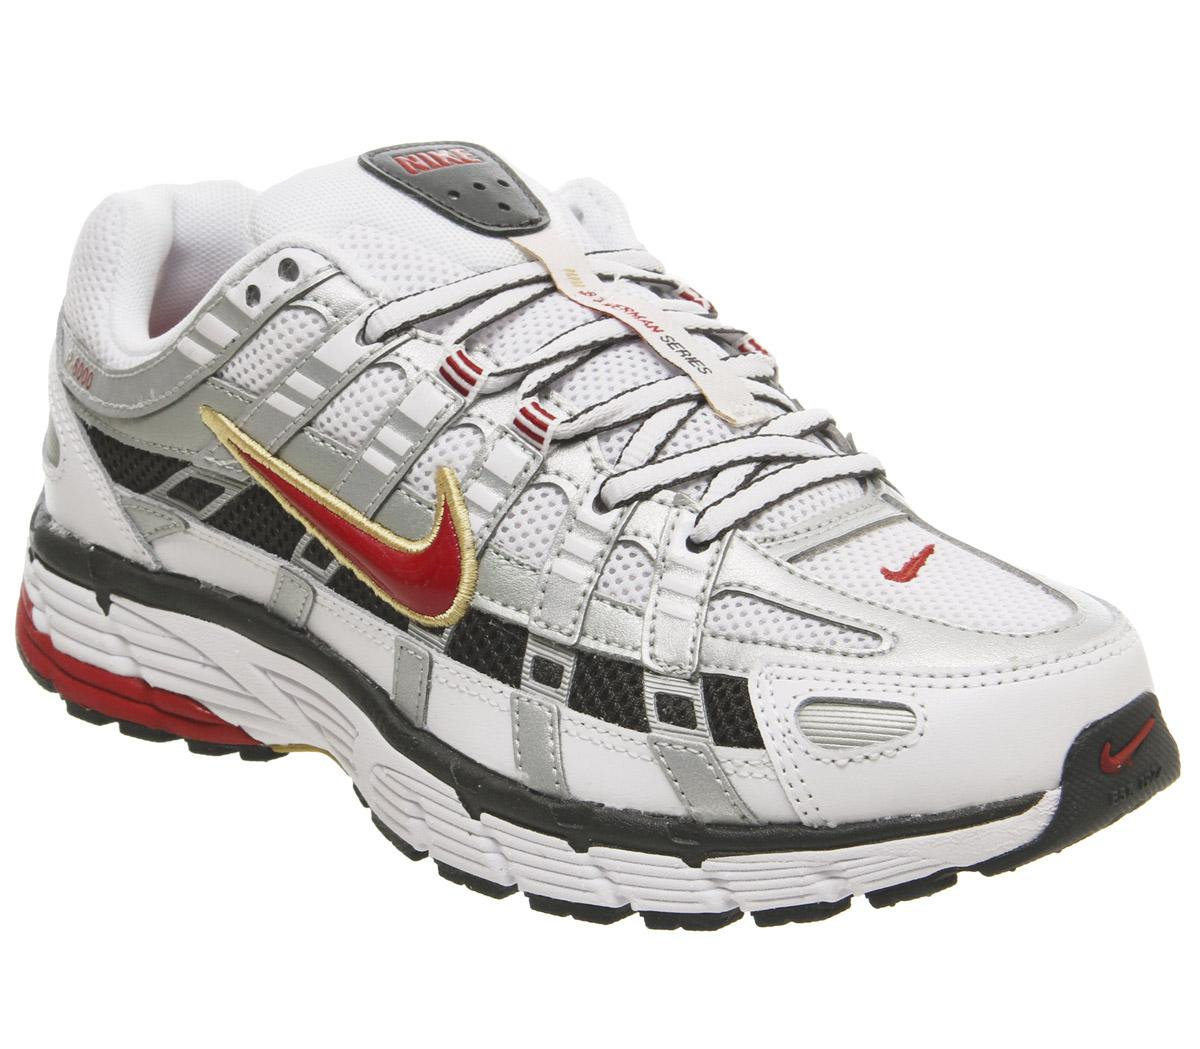 sarto portatori di handicap Pensionato  Nike P-6000 Trainers White Varisty Red Metallic Platinum - Hers trainers